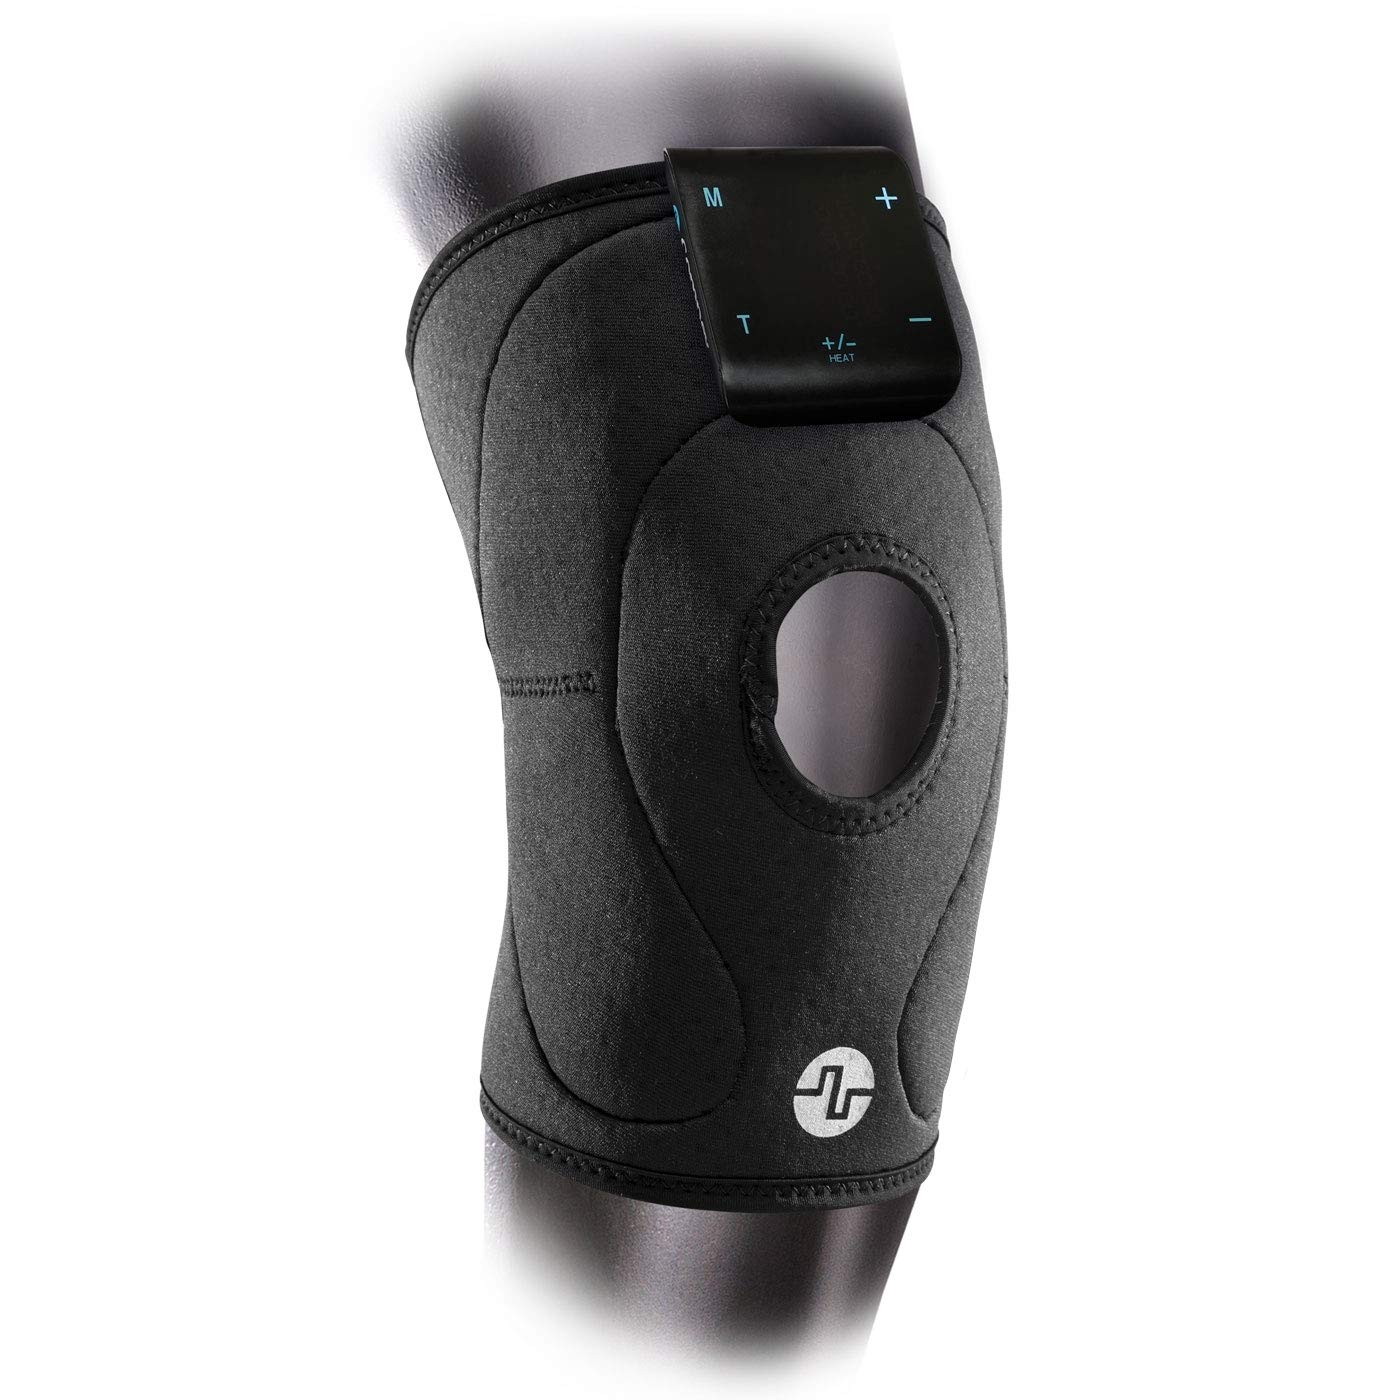 Compex TENS/HEAT Knee Wrap, Black - Heated Knee Wrap with TENS Unit for Knee Pain, Small/Medium